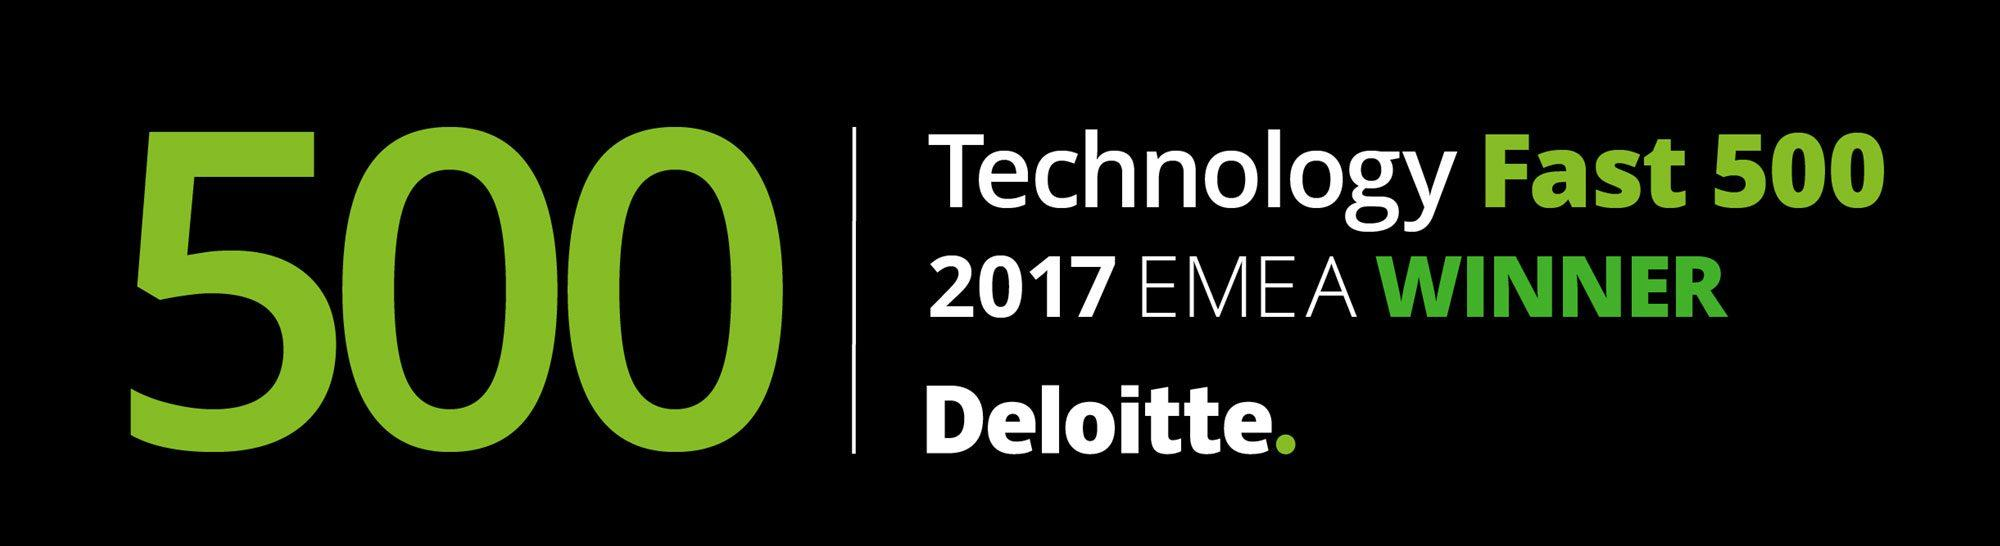 We Ranked in Technology Fast 500 EMEA